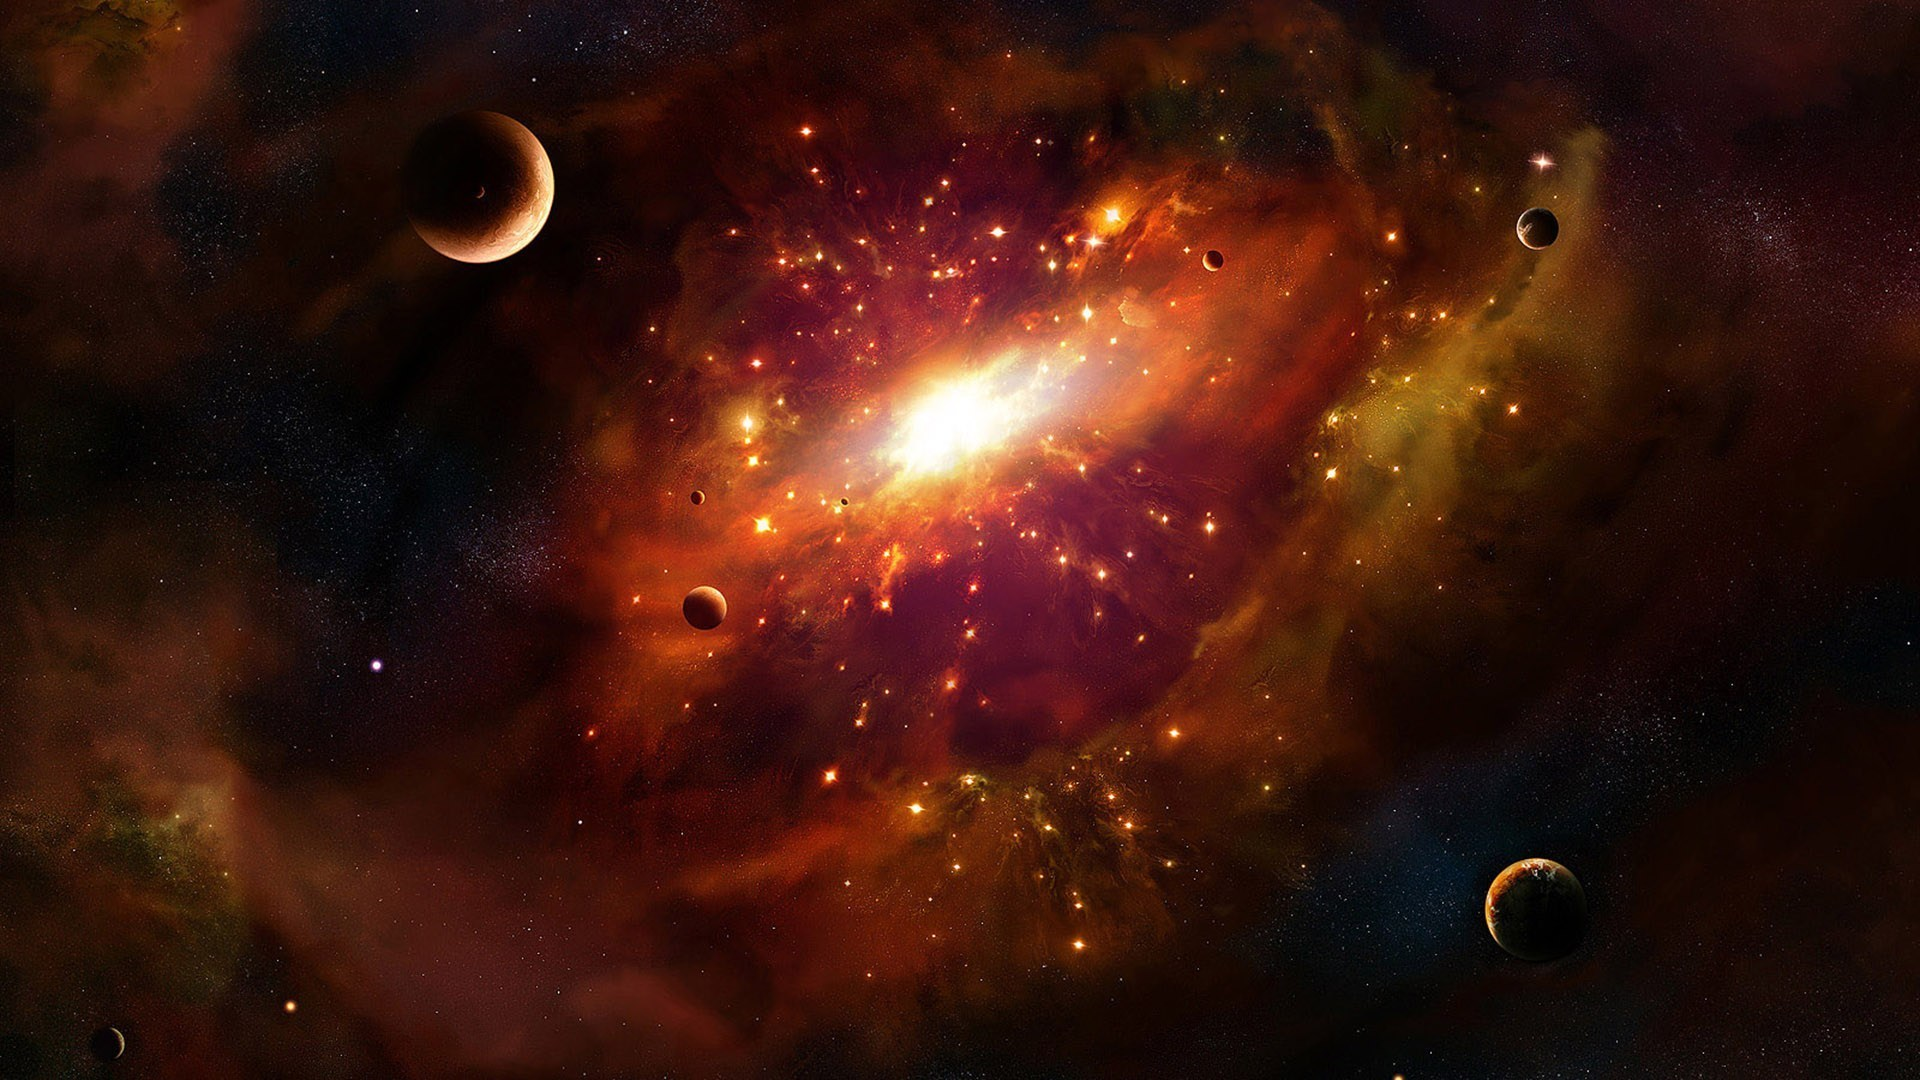 HD Galaxy Wallpapers Free Download 114